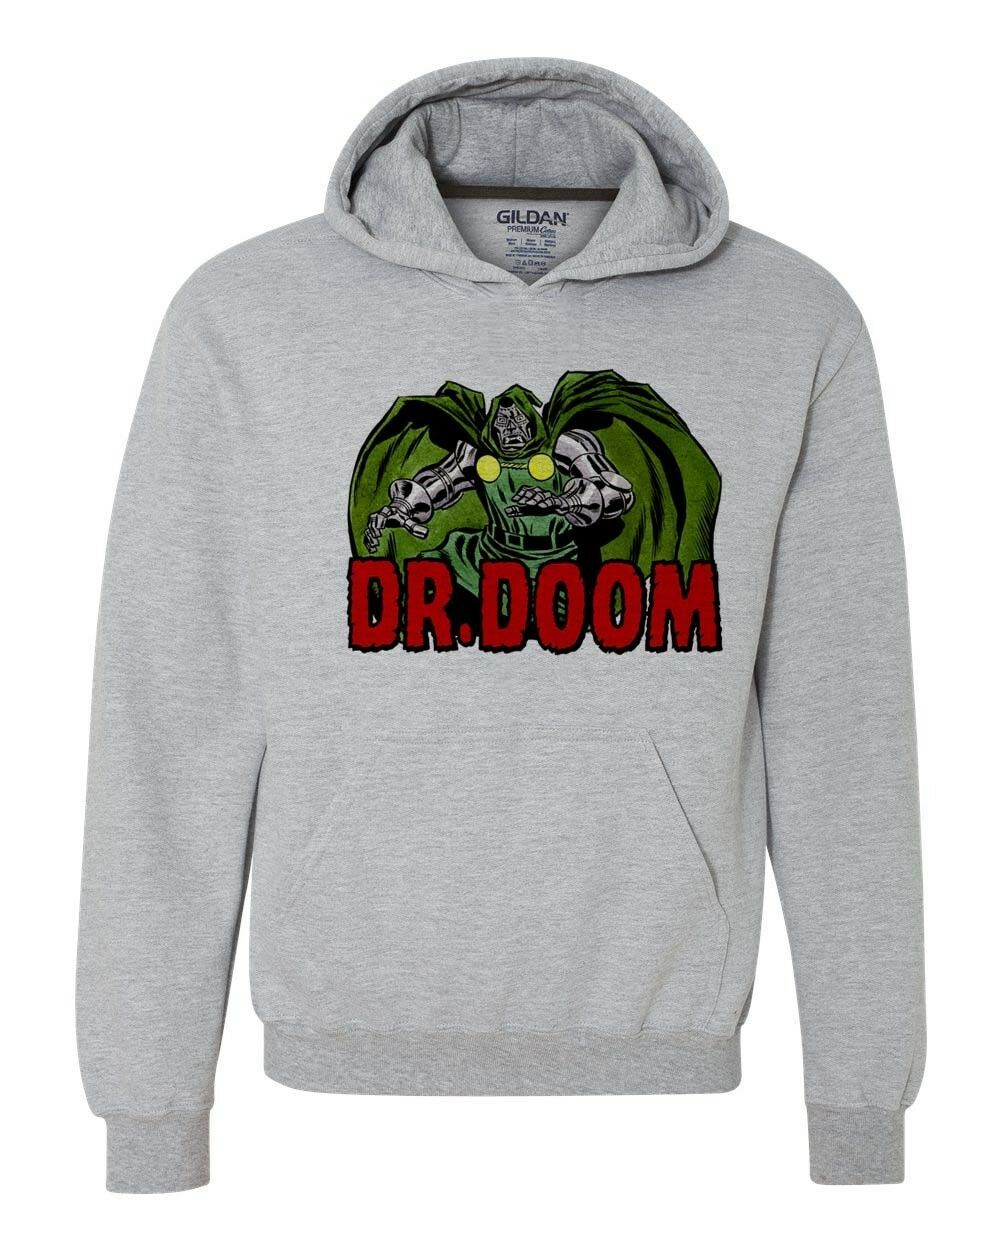 Dr Doom Hoodie retro marvel comics fantastic four silver age comic book 1970s